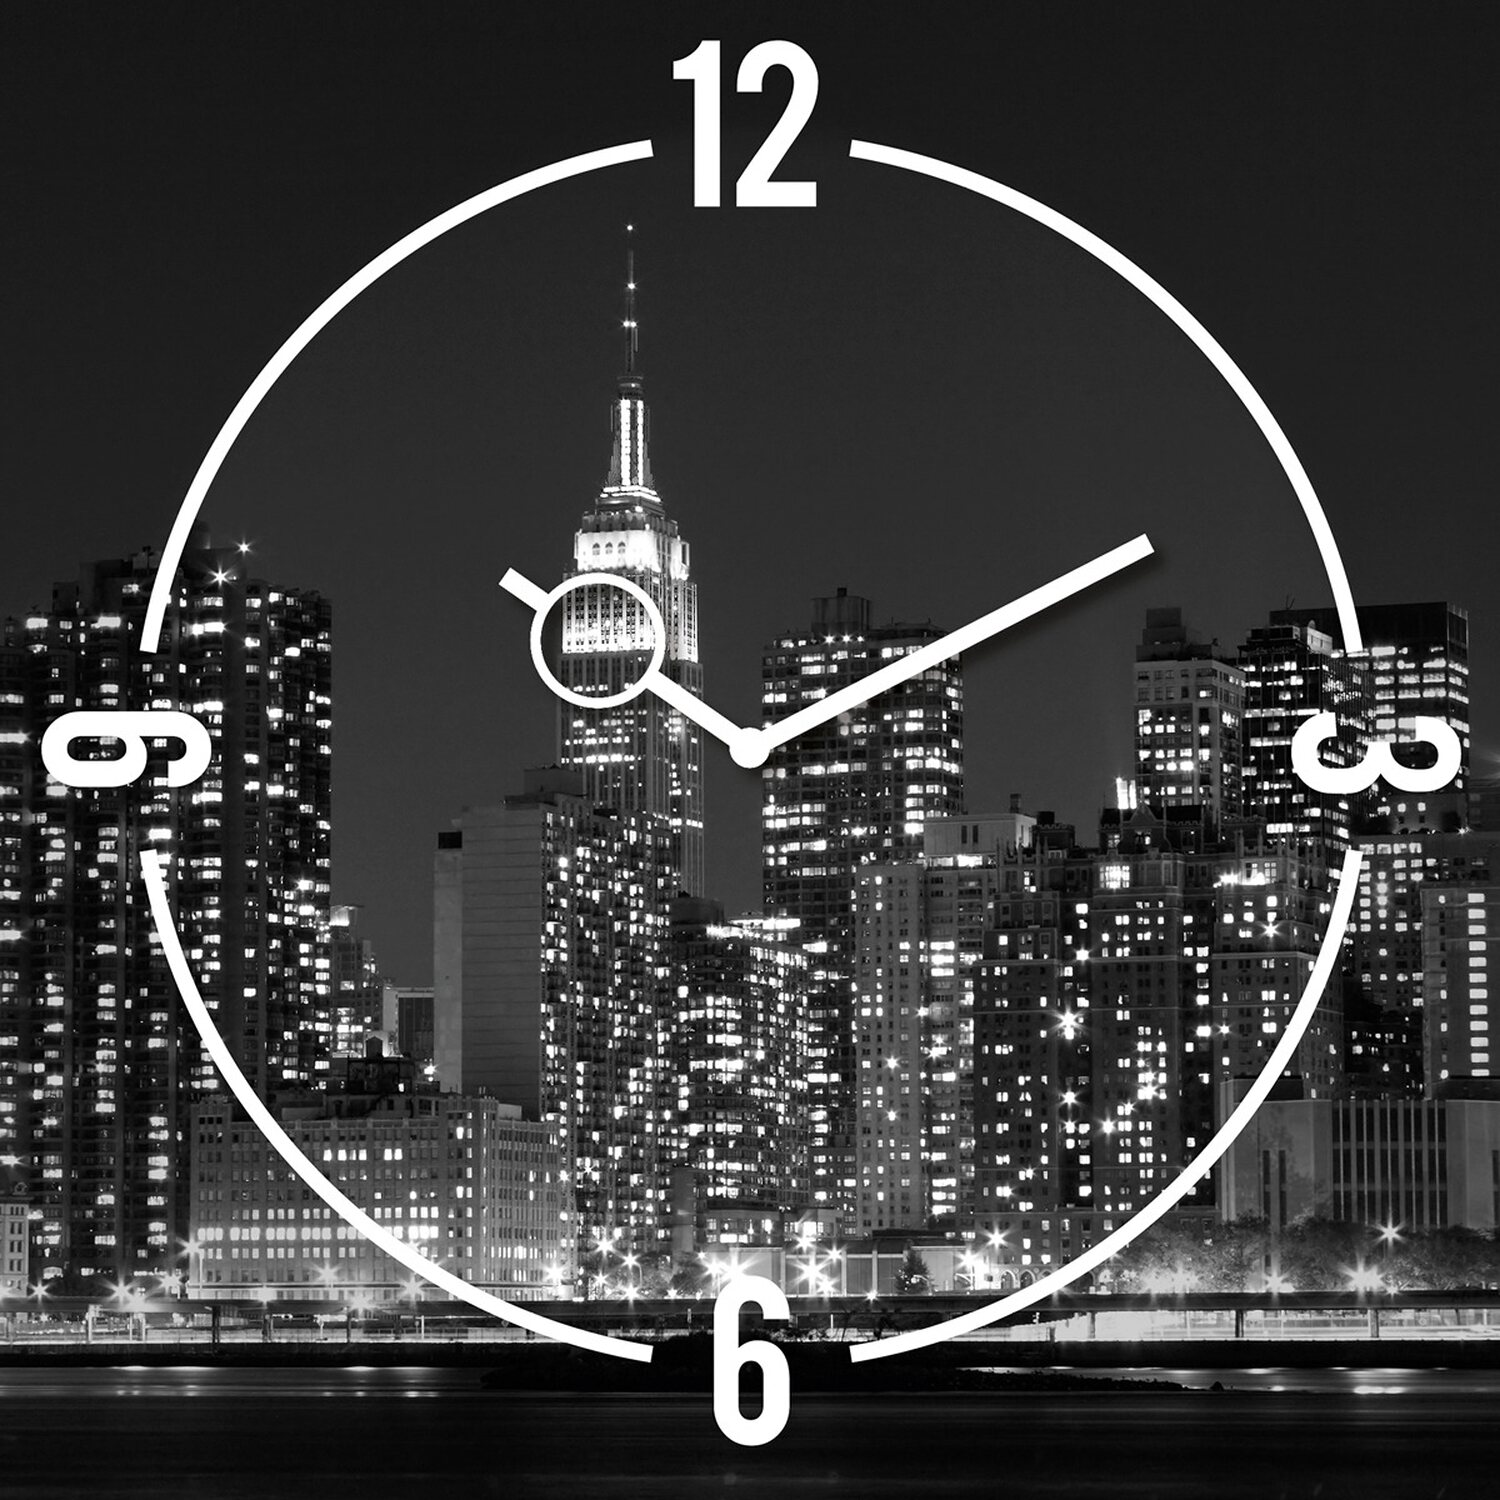 eurographics wanduhr time art new york clock 30 cm x 30 cm kaufen bei obi. Black Bedroom Furniture Sets. Home Design Ideas